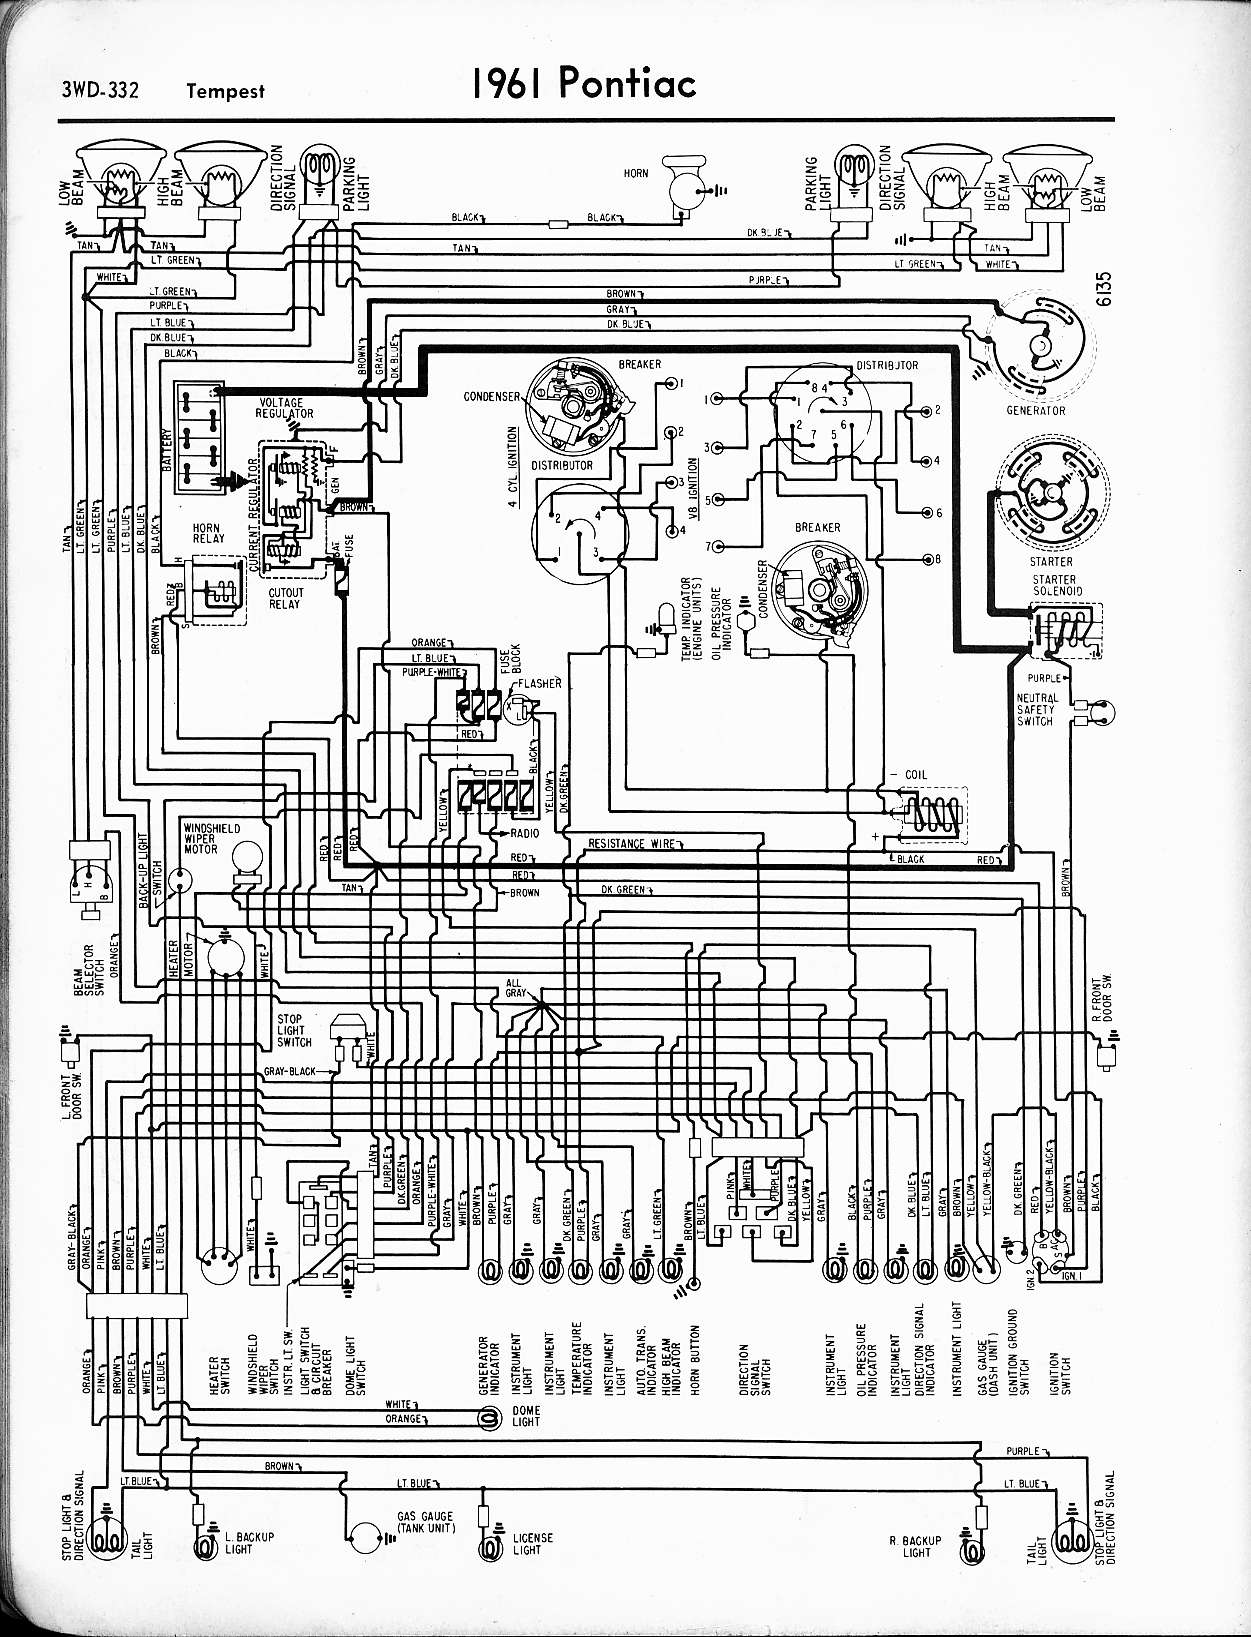 Electric Le Pontiac 3 8 Engine Diagram Modern Design Of Wiring Firebird V6 Car Library Rh 53 Kandelhof Restaurant De Bonneville 38 Parts